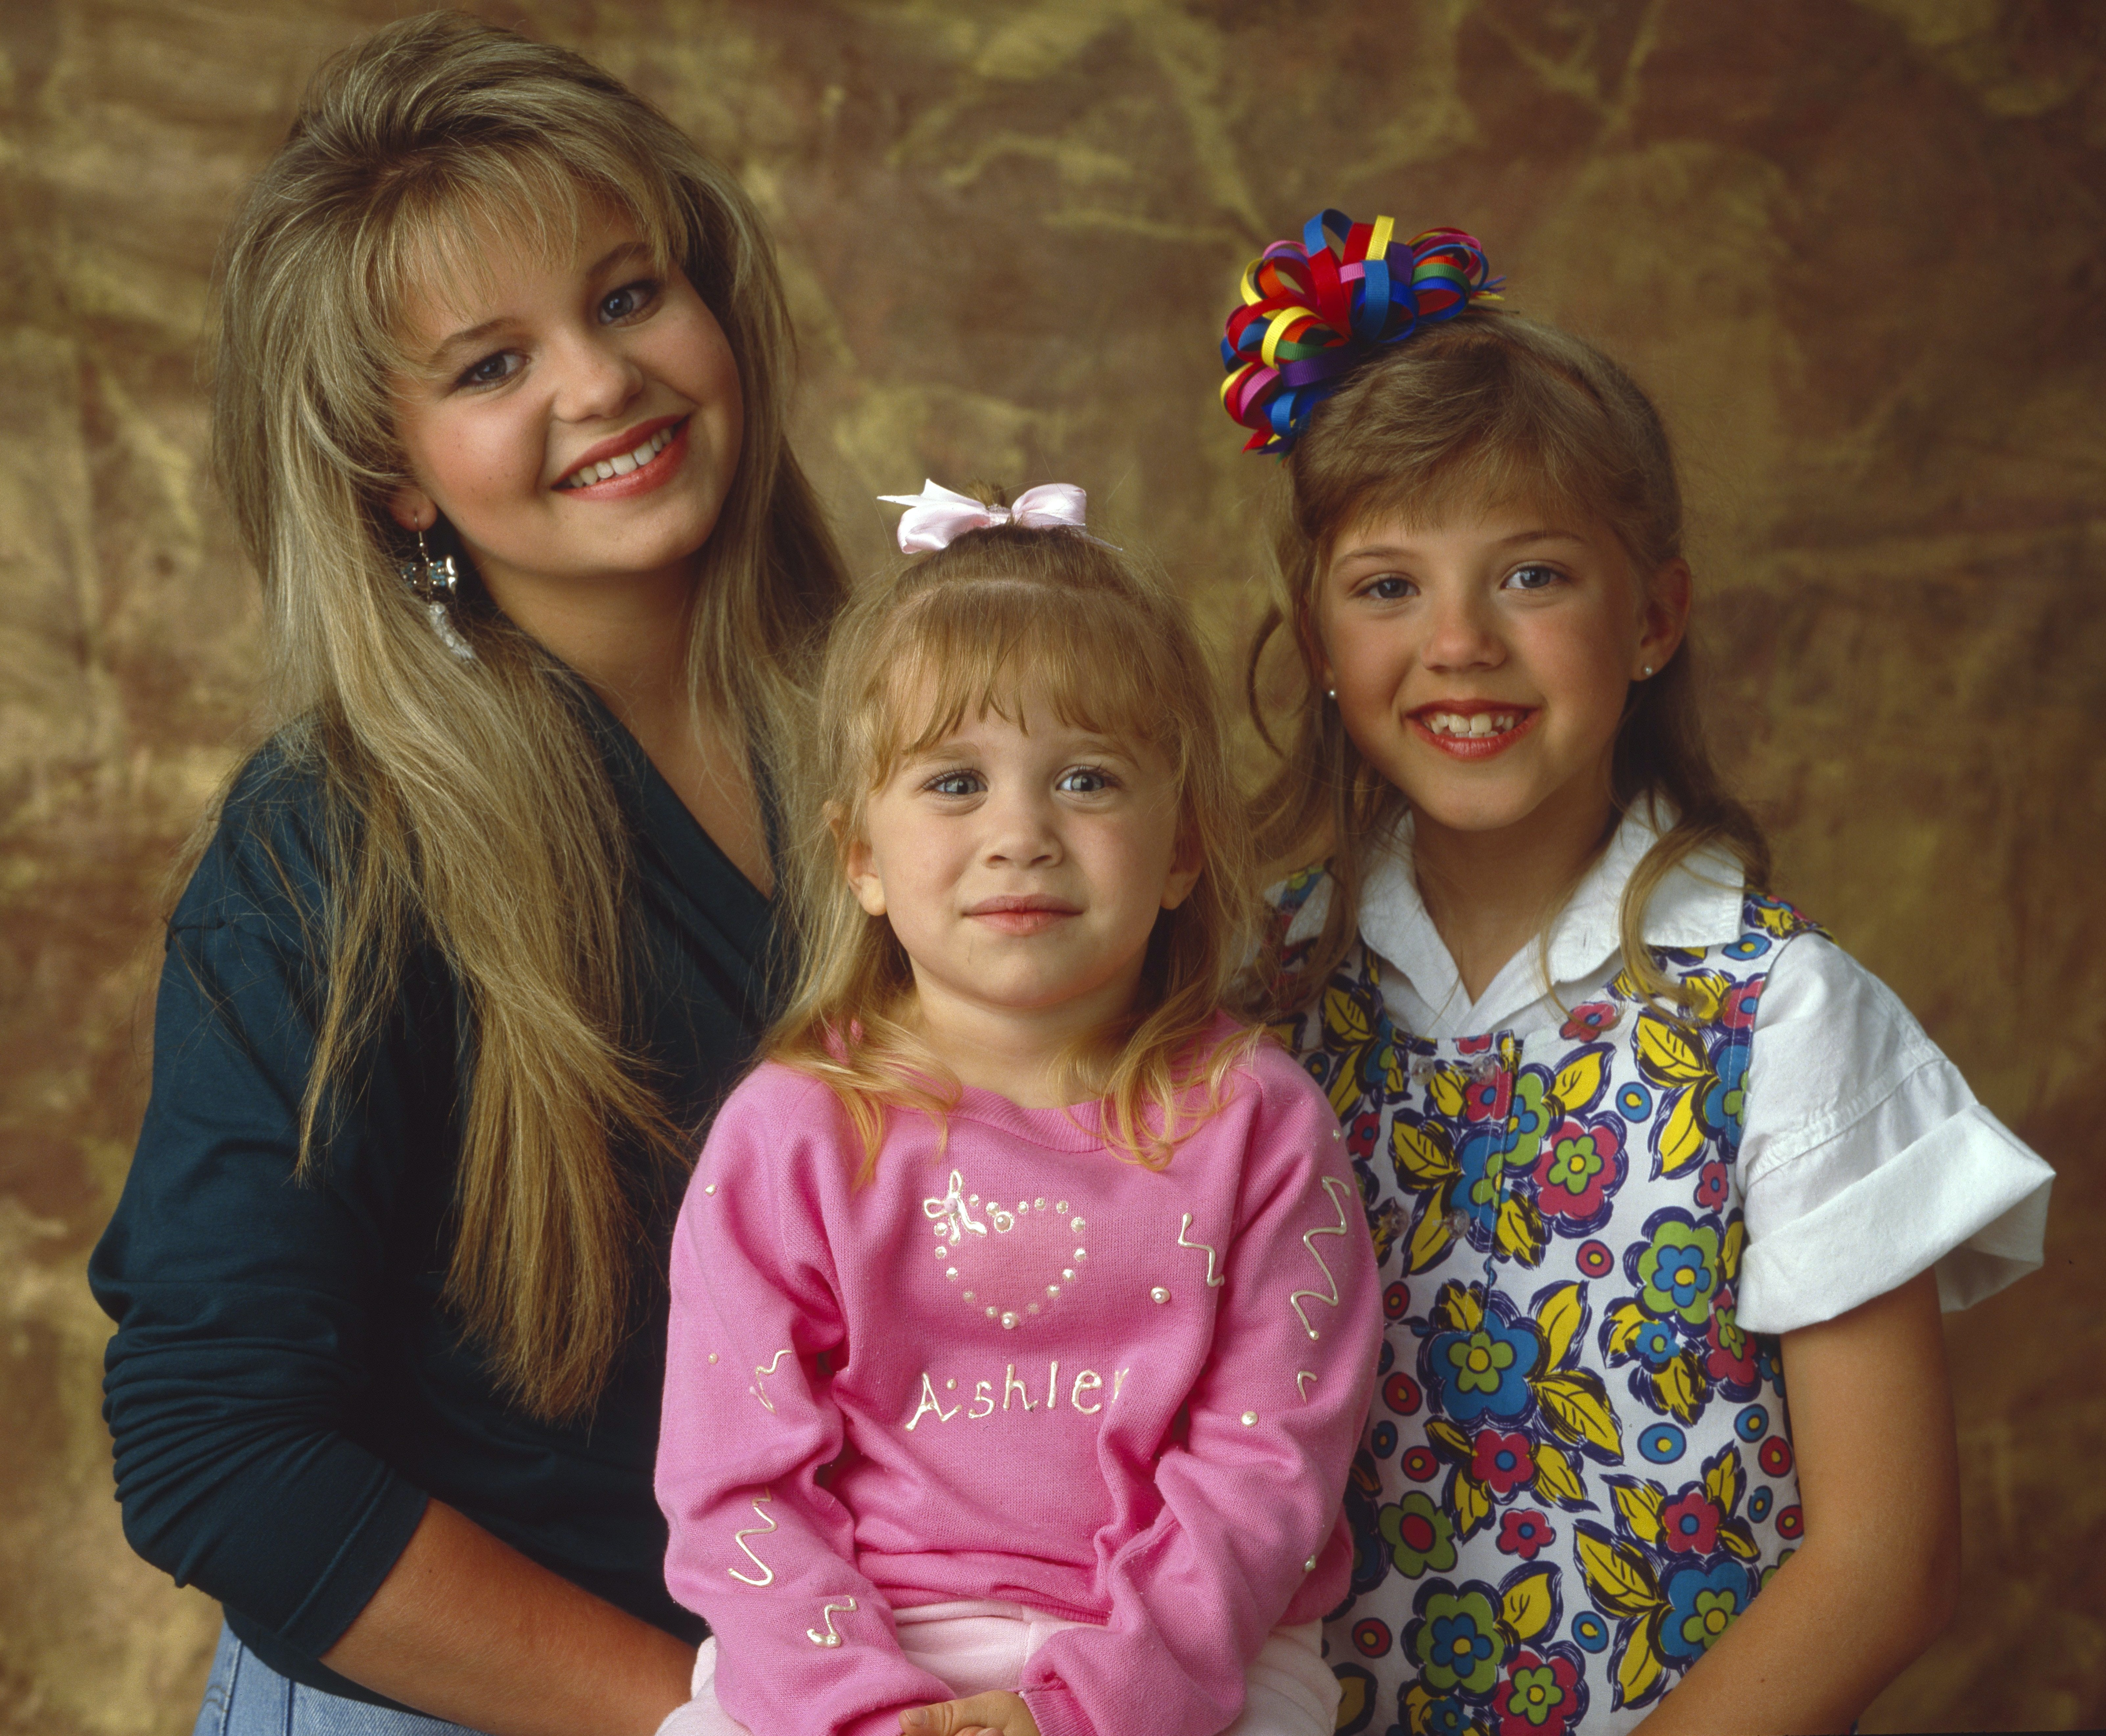 Full House Scrunchie Hairstyles That Will Make You Miss The